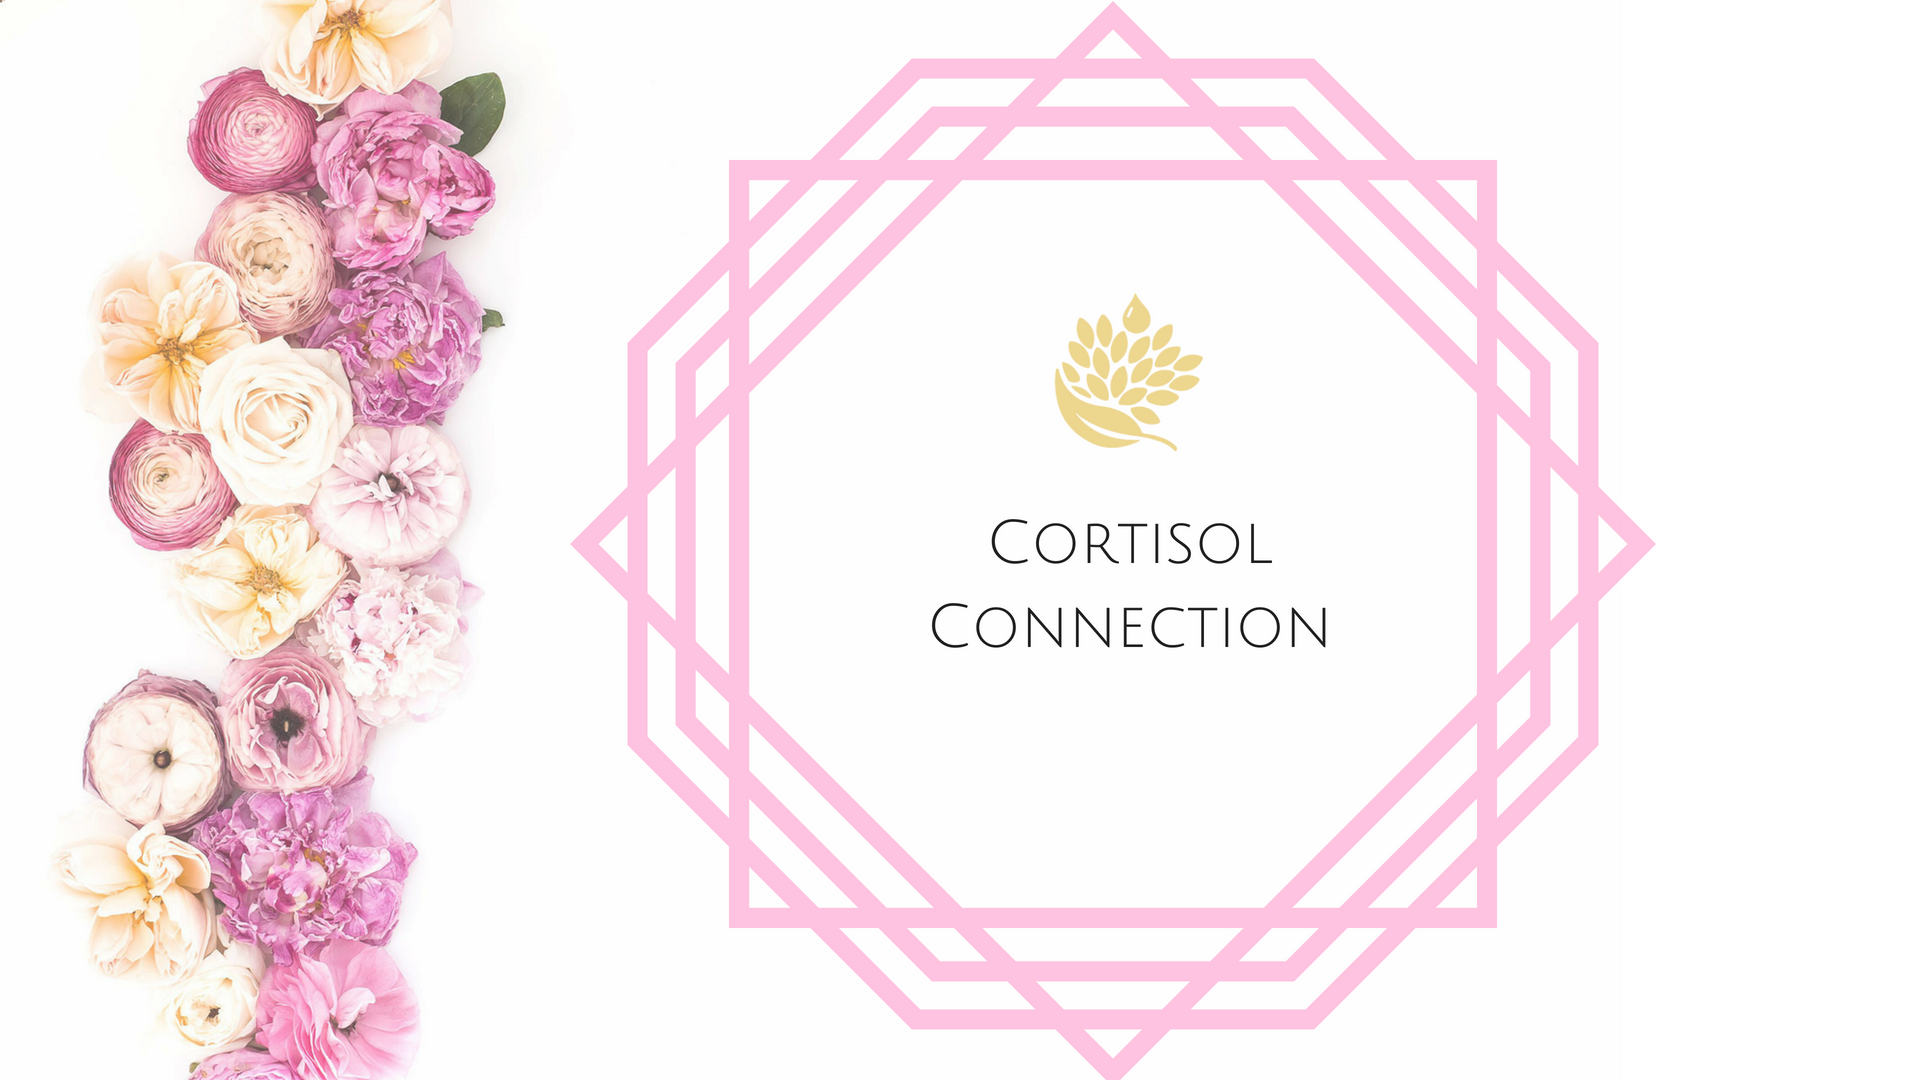 Cortisol Connection